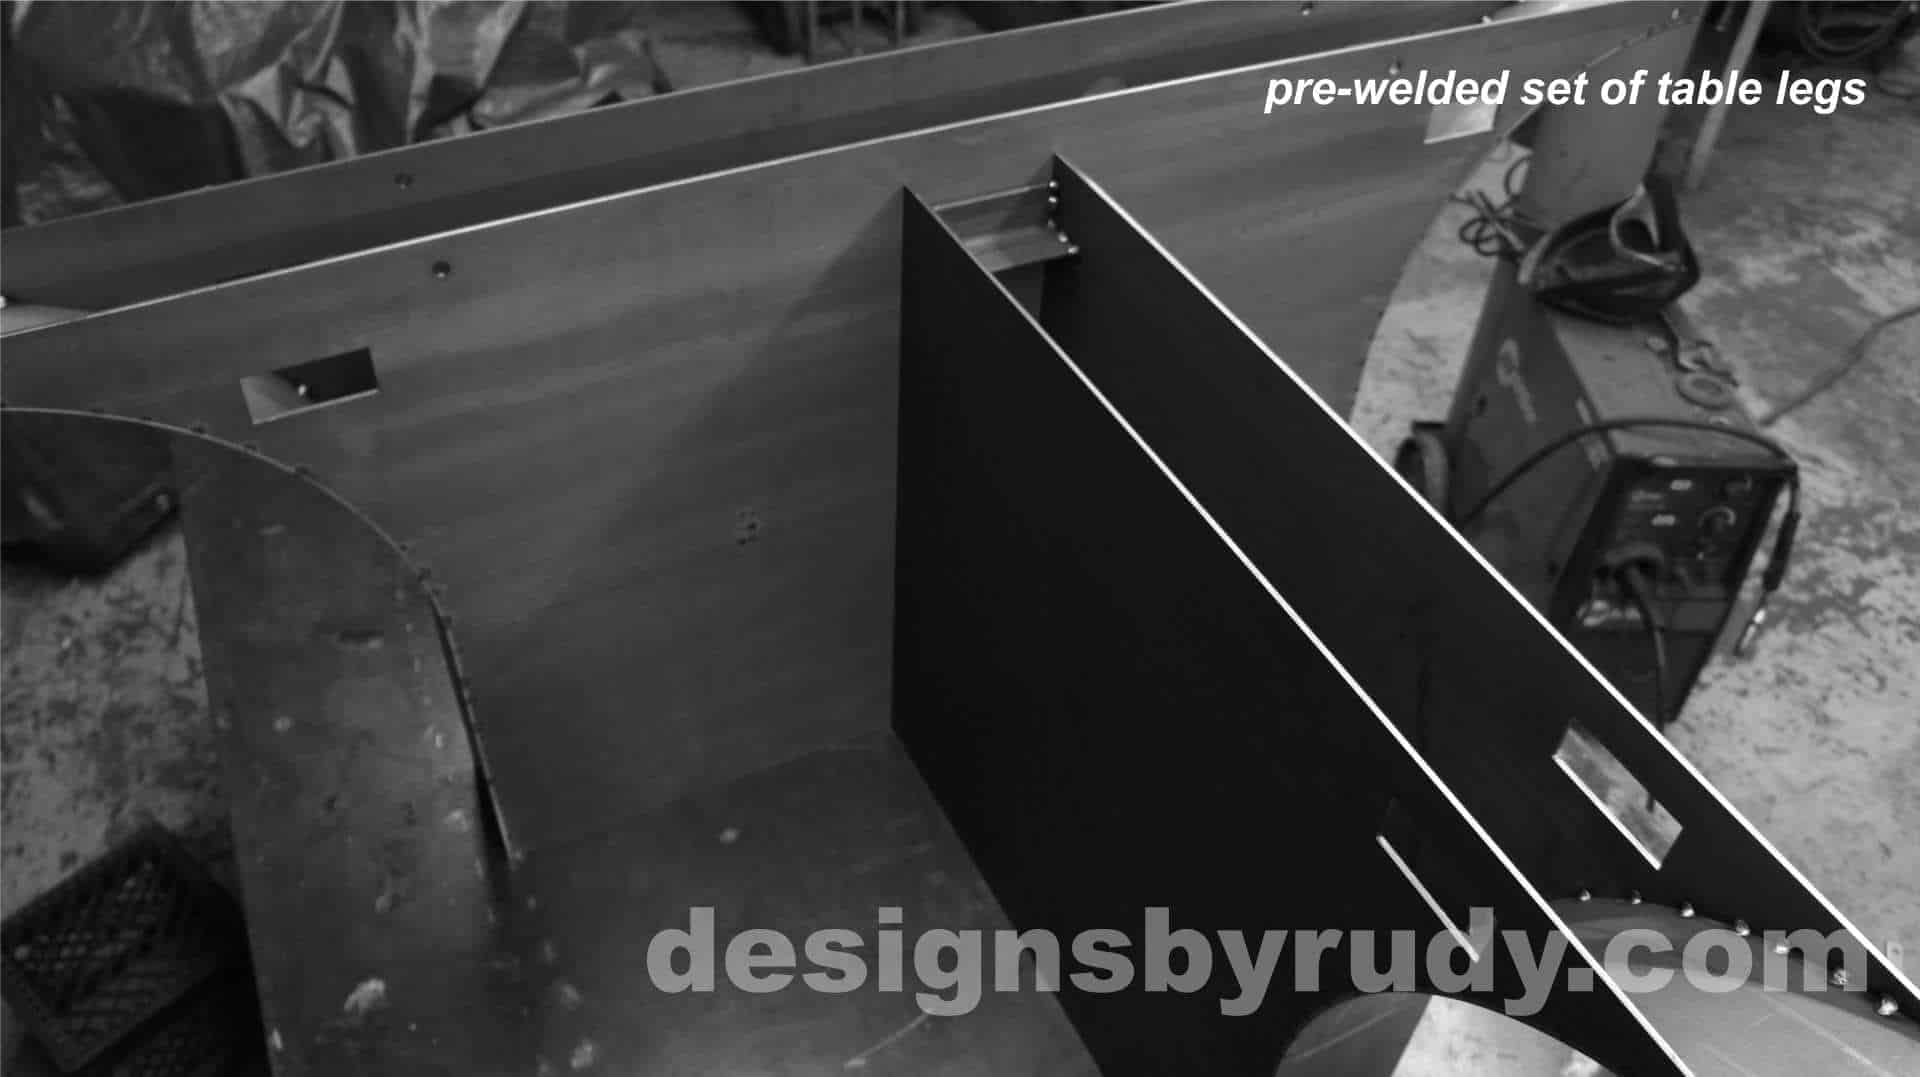 Conference room table, Designs by Rudy, pre-welded set of table legs